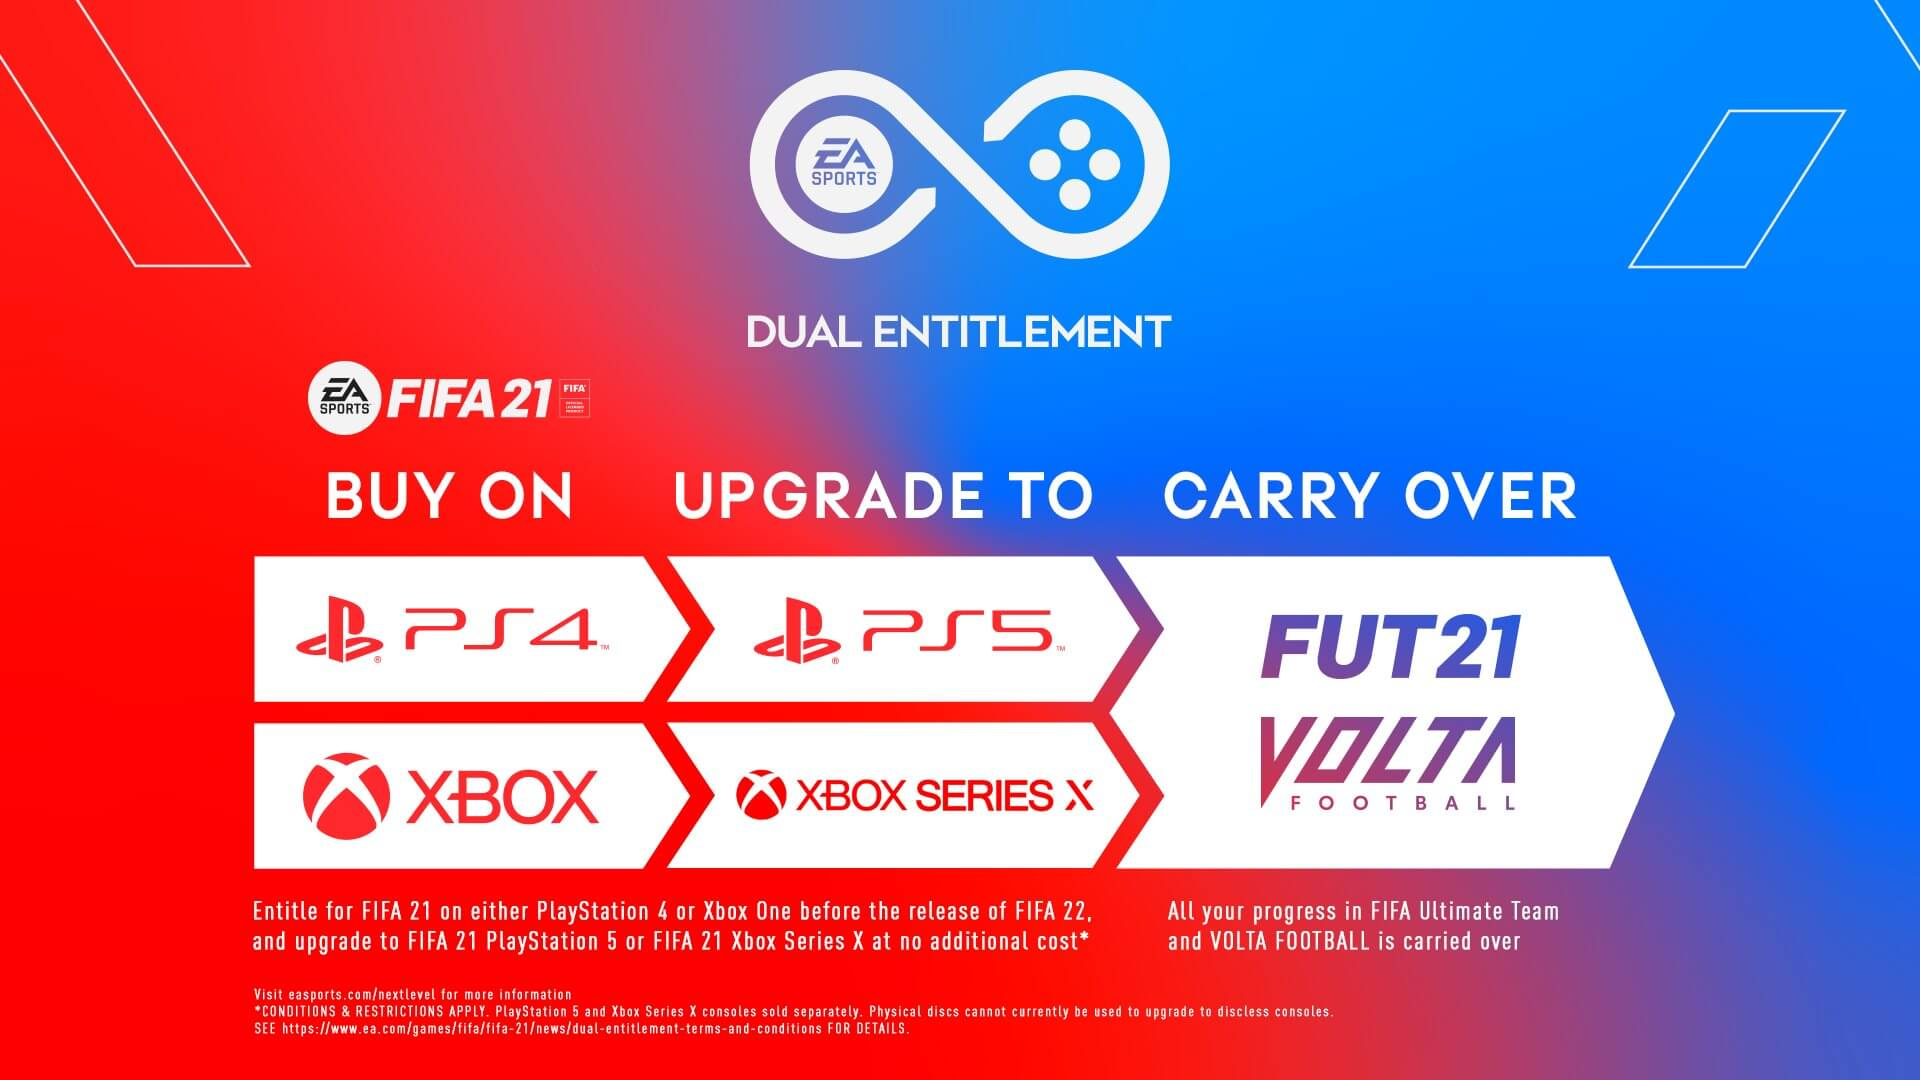 FIFA 21 Next Level - upgrade gratuito alle console di next-gen